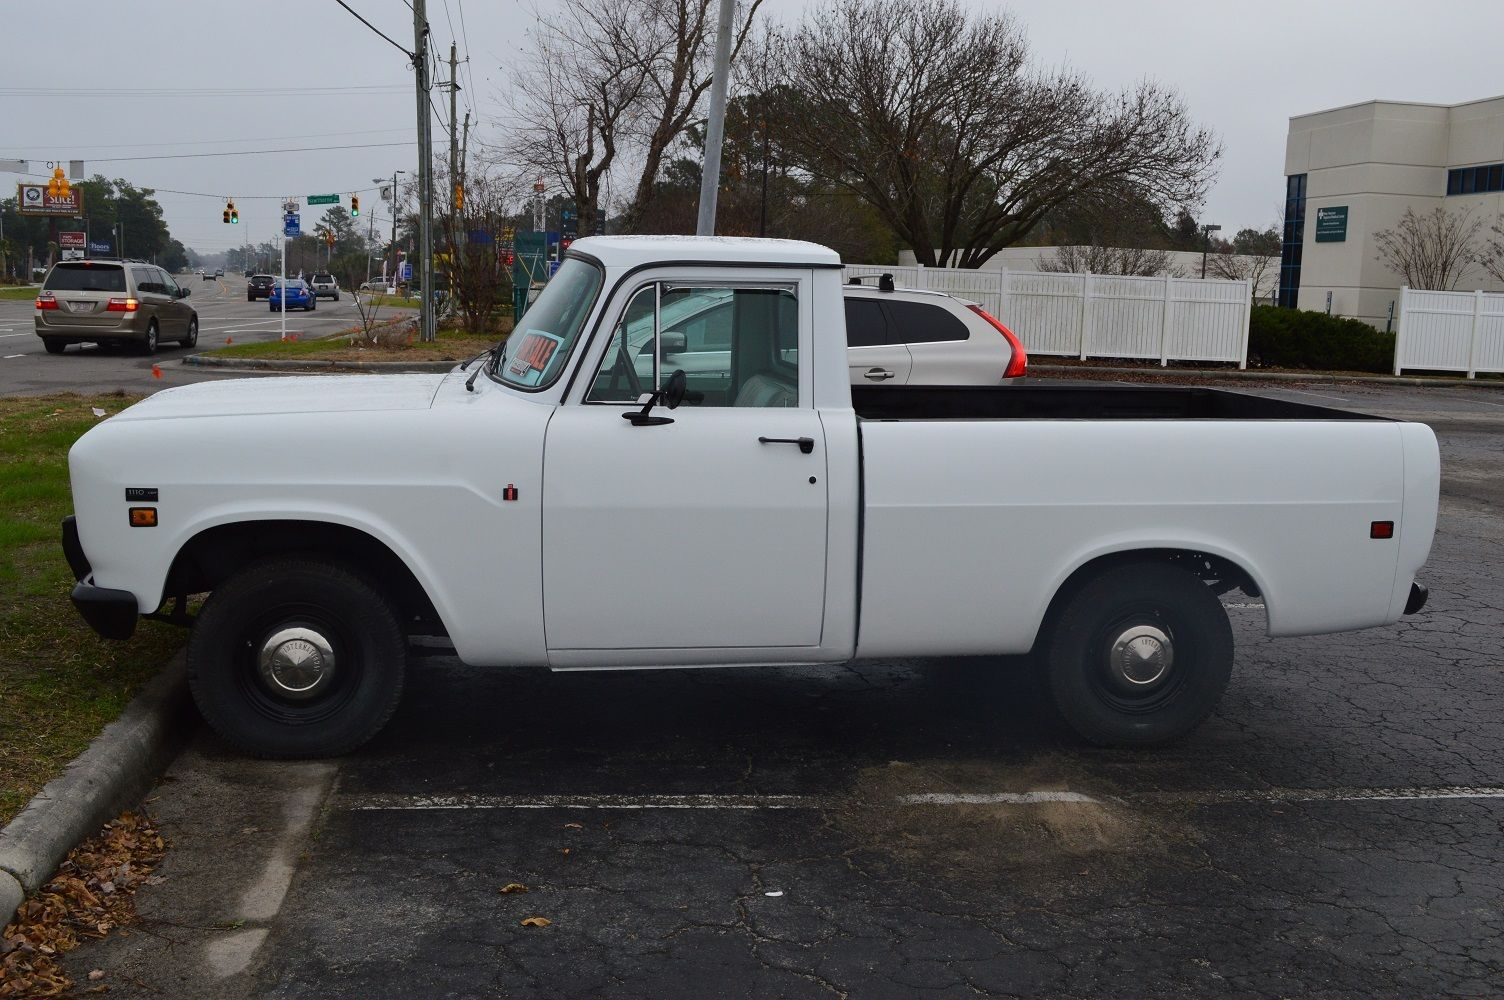 Rhino Lined Truck >> 1972 International Harvester 1110 2-door Pickup Truck, Very Realiable, 77kmiles